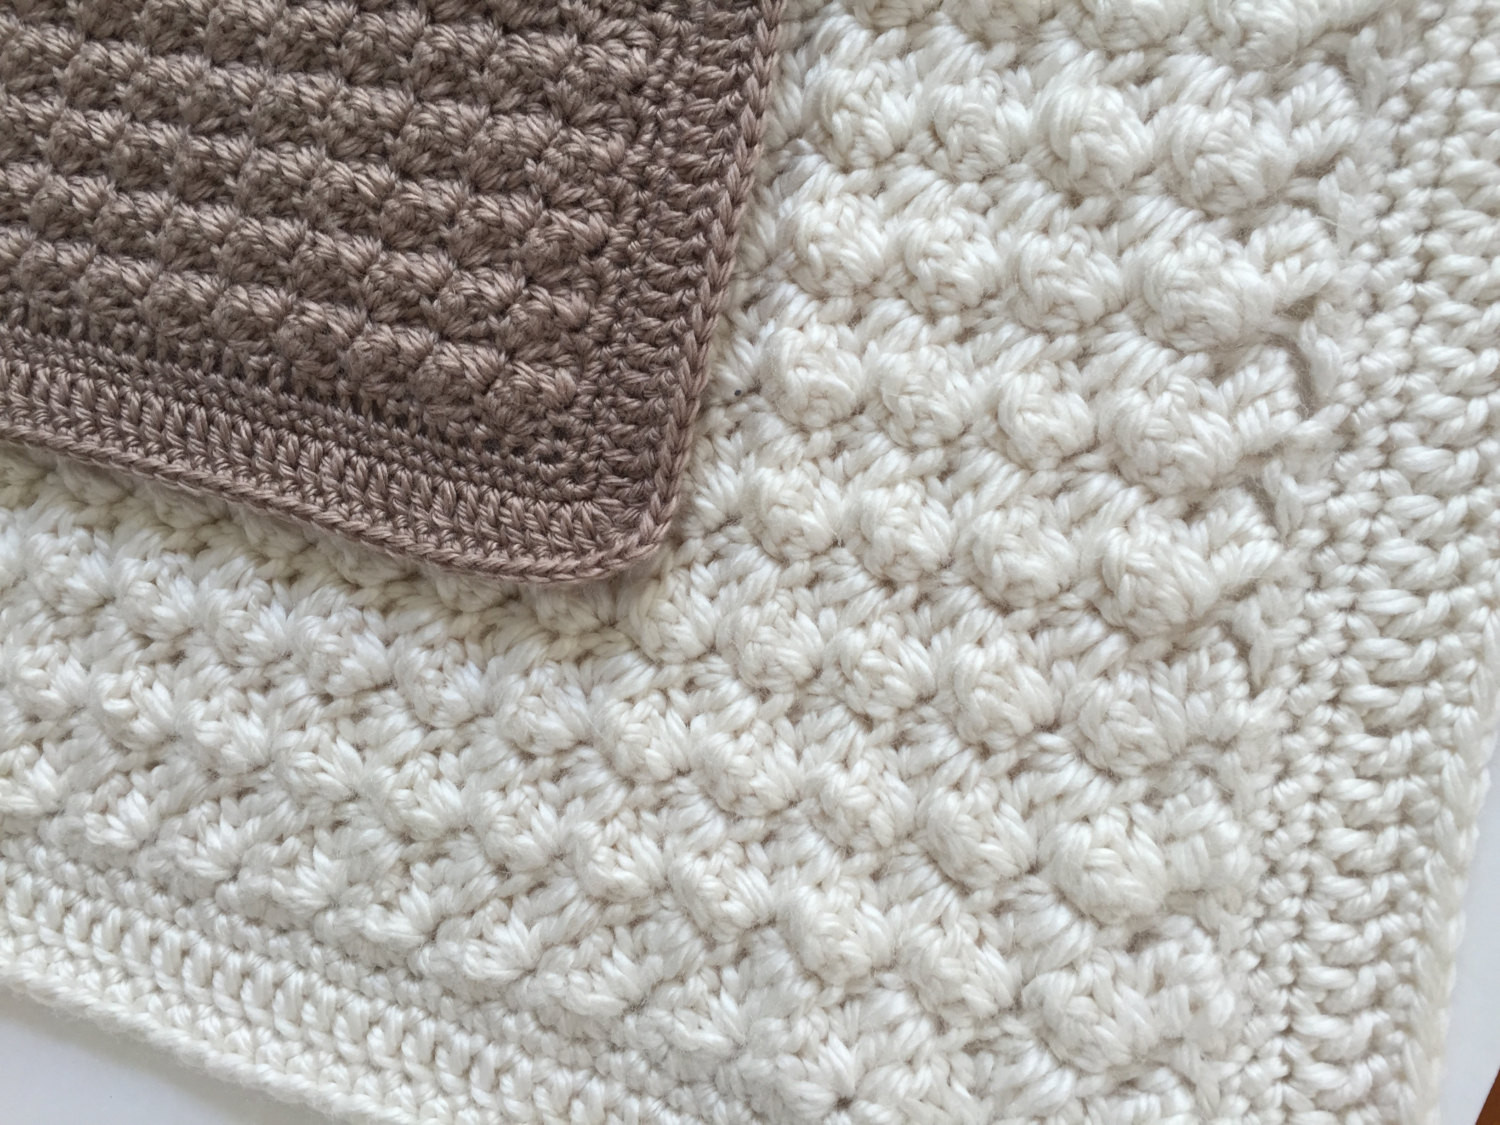 Chunky Yarn Crochet Patterns Fresh Chunky Crochet Baby Blanket Pattern Of Amazing 46 Photos Chunky Yarn Crochet Patterns